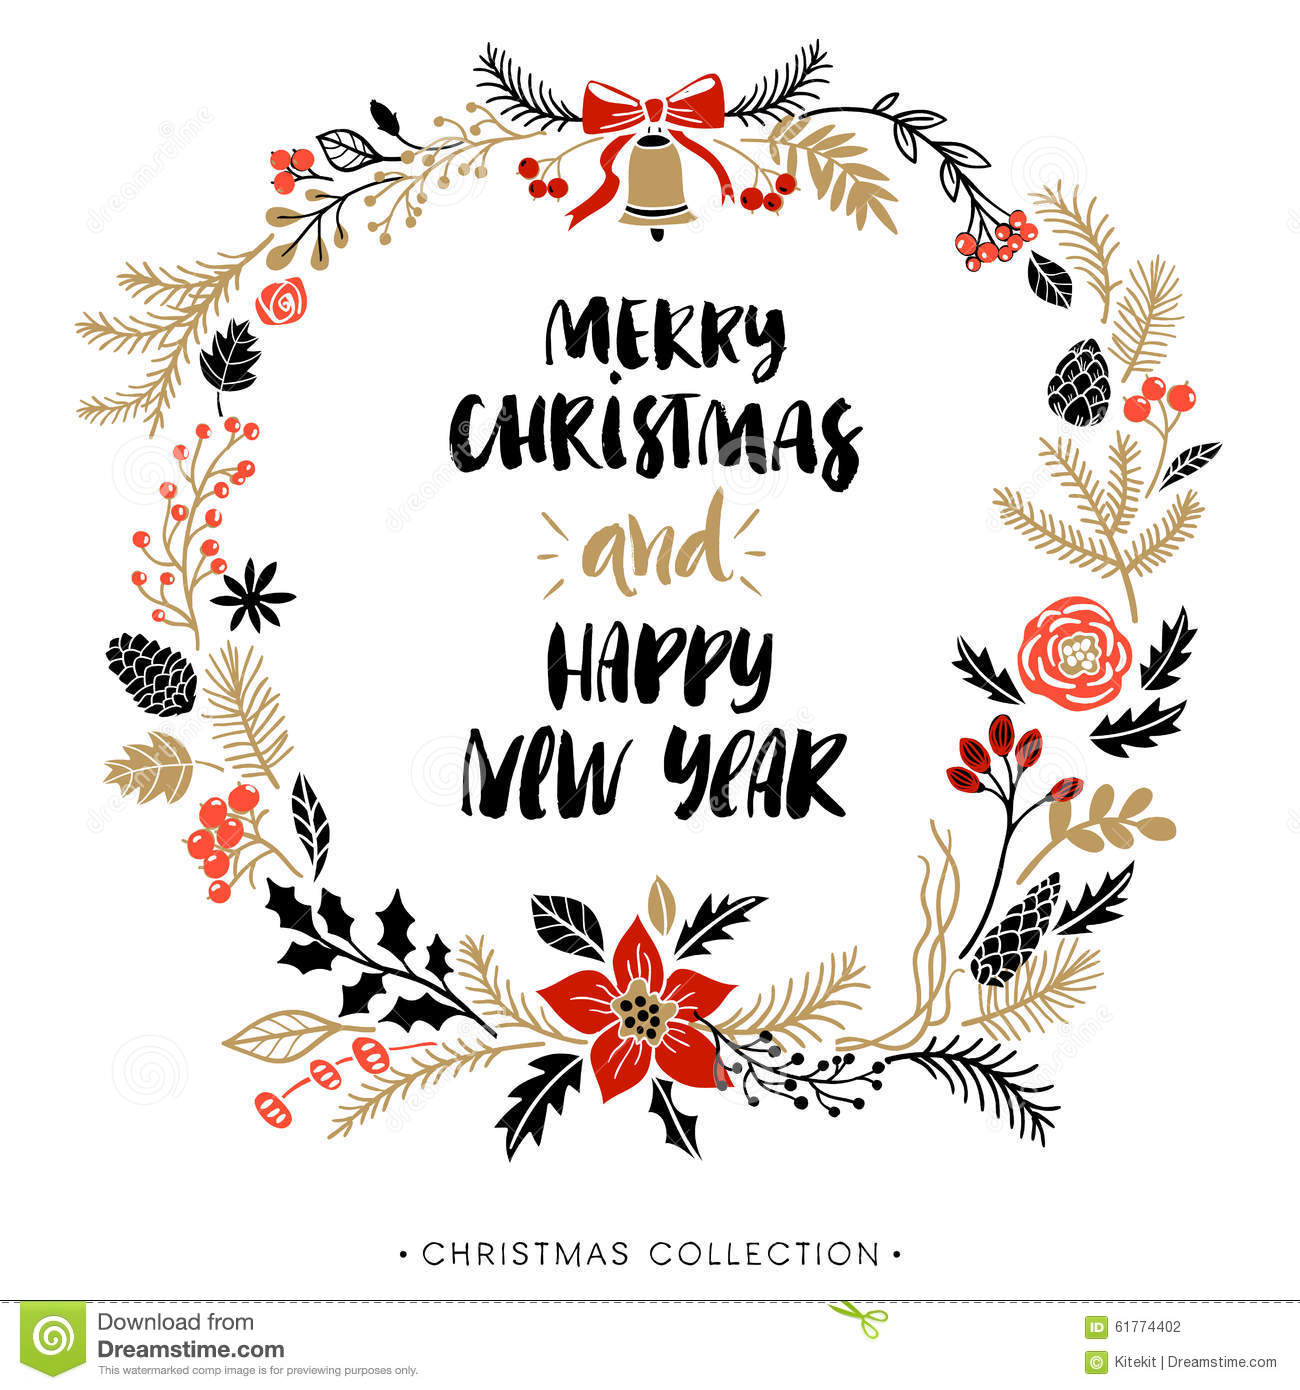 happy new year and merry christmas greeting wreath with calligraphy stock vector illustration of celebration bright 61774402 dreamstime com